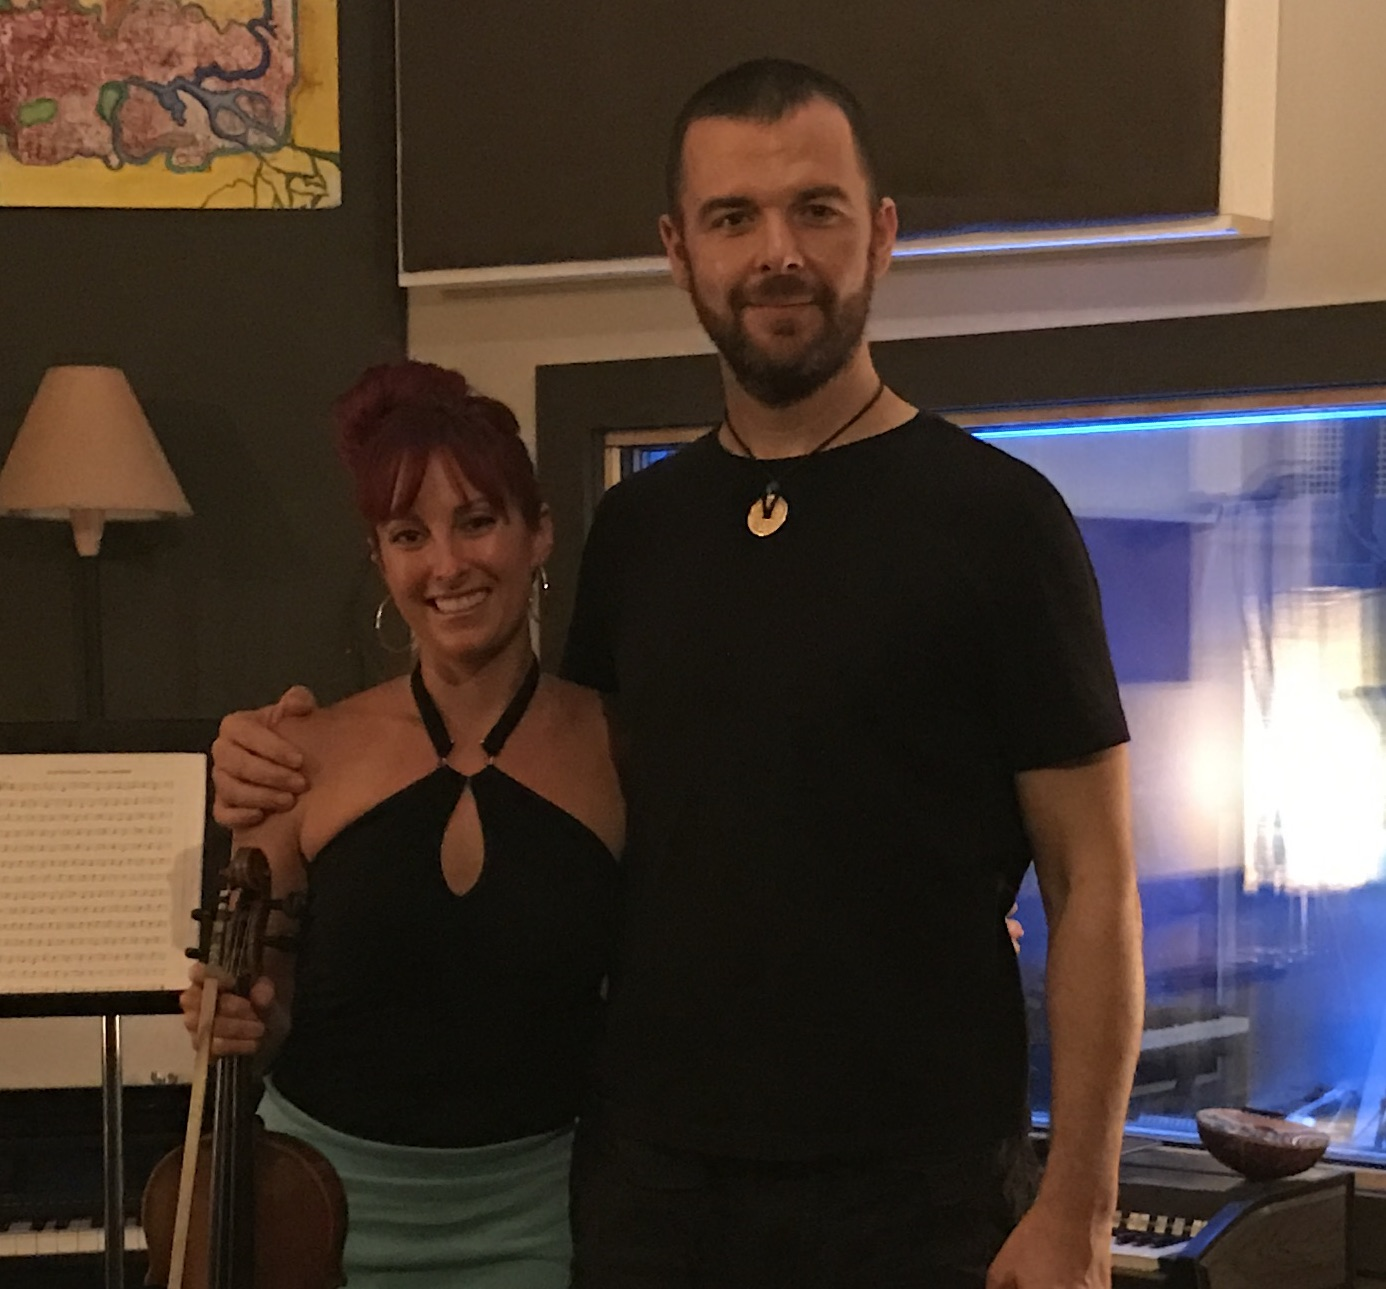 With Natasha Ratz after her amazing violin session